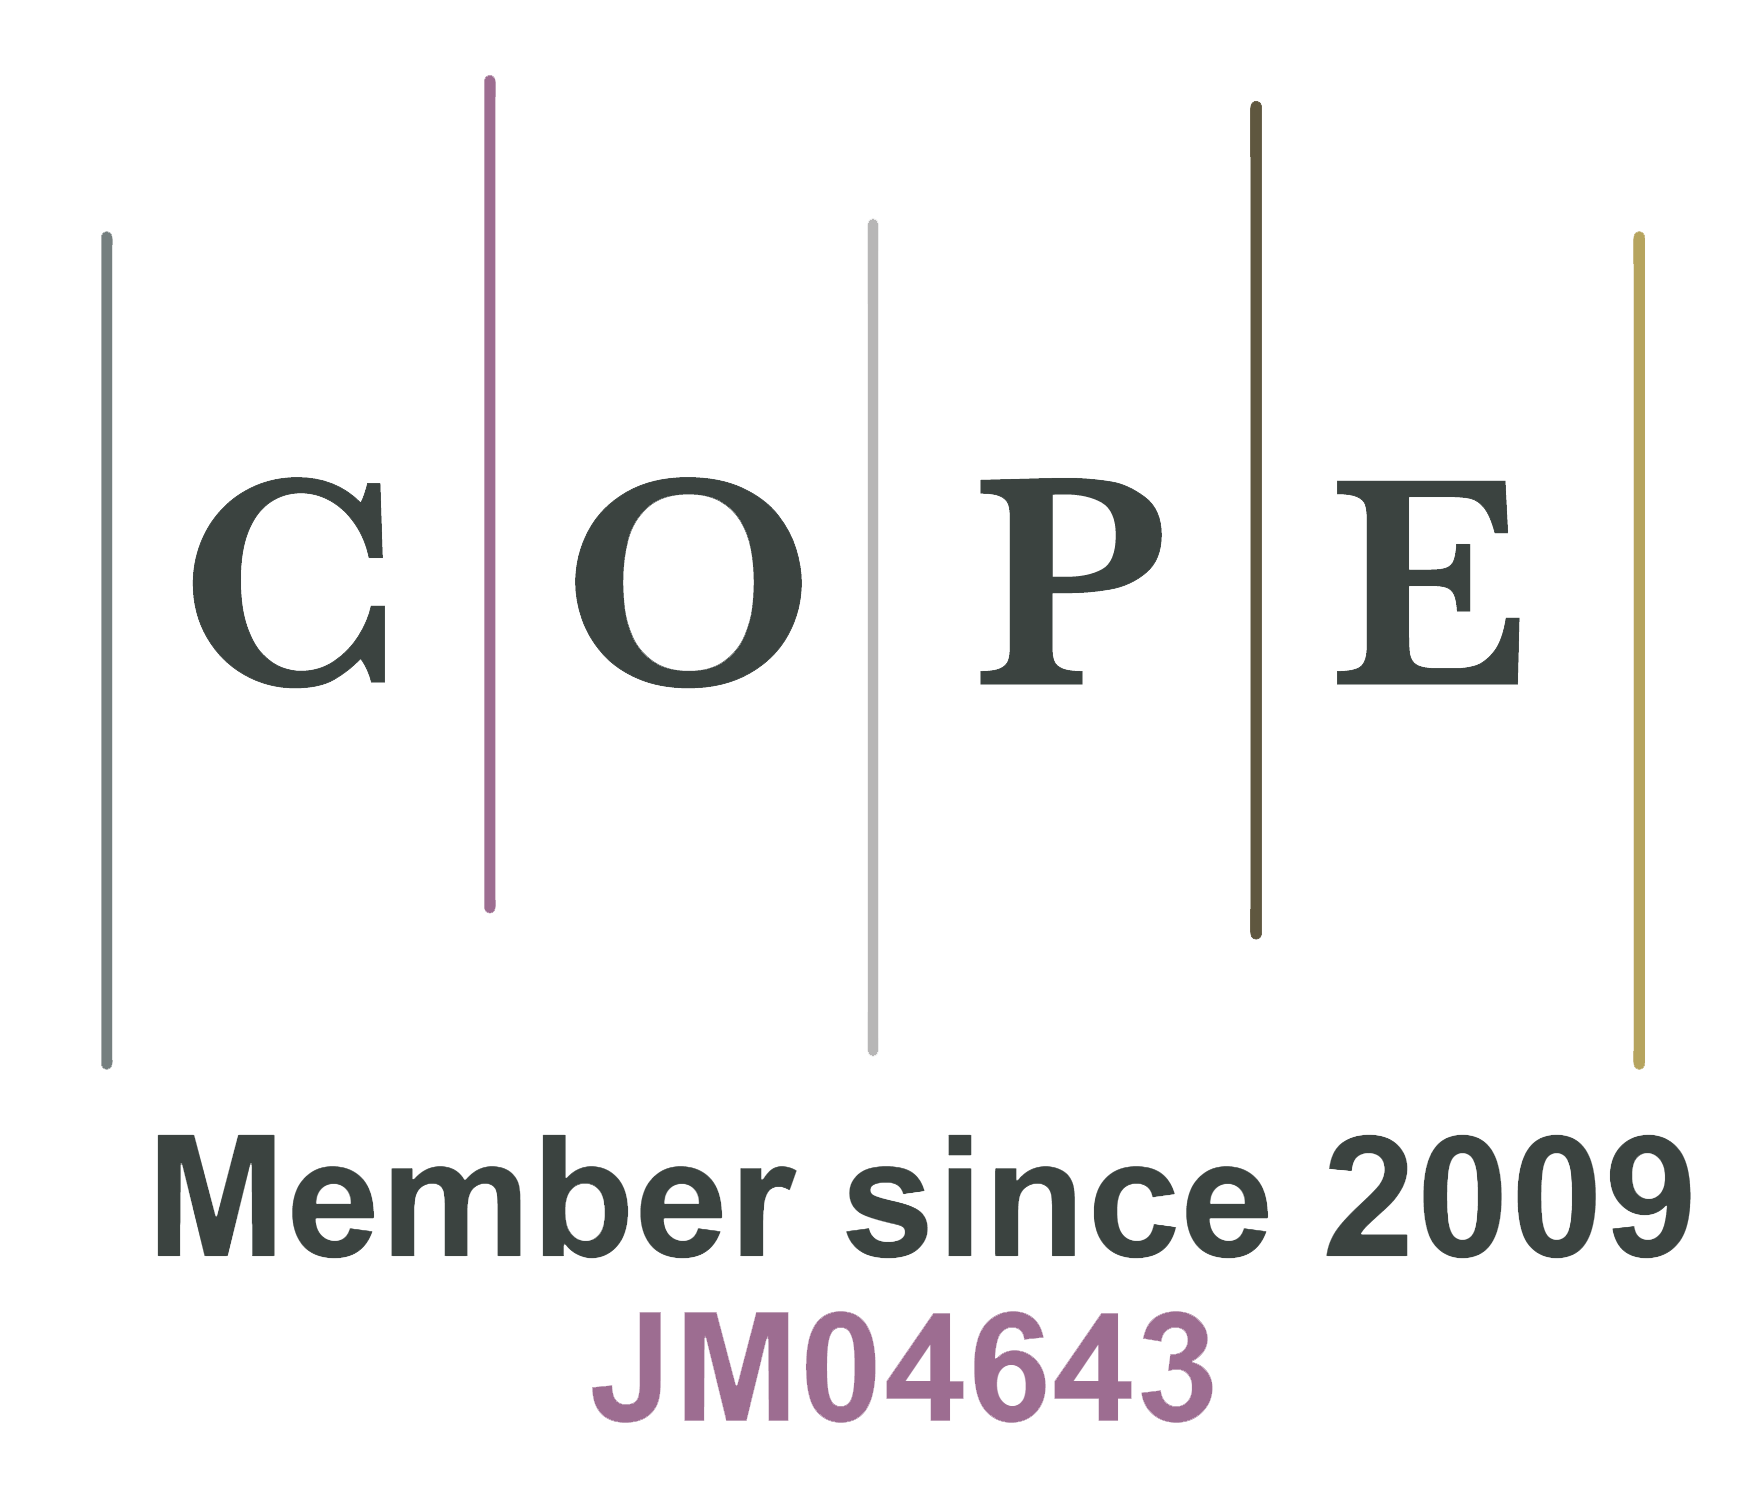 COPE Member since 2009 JM04643